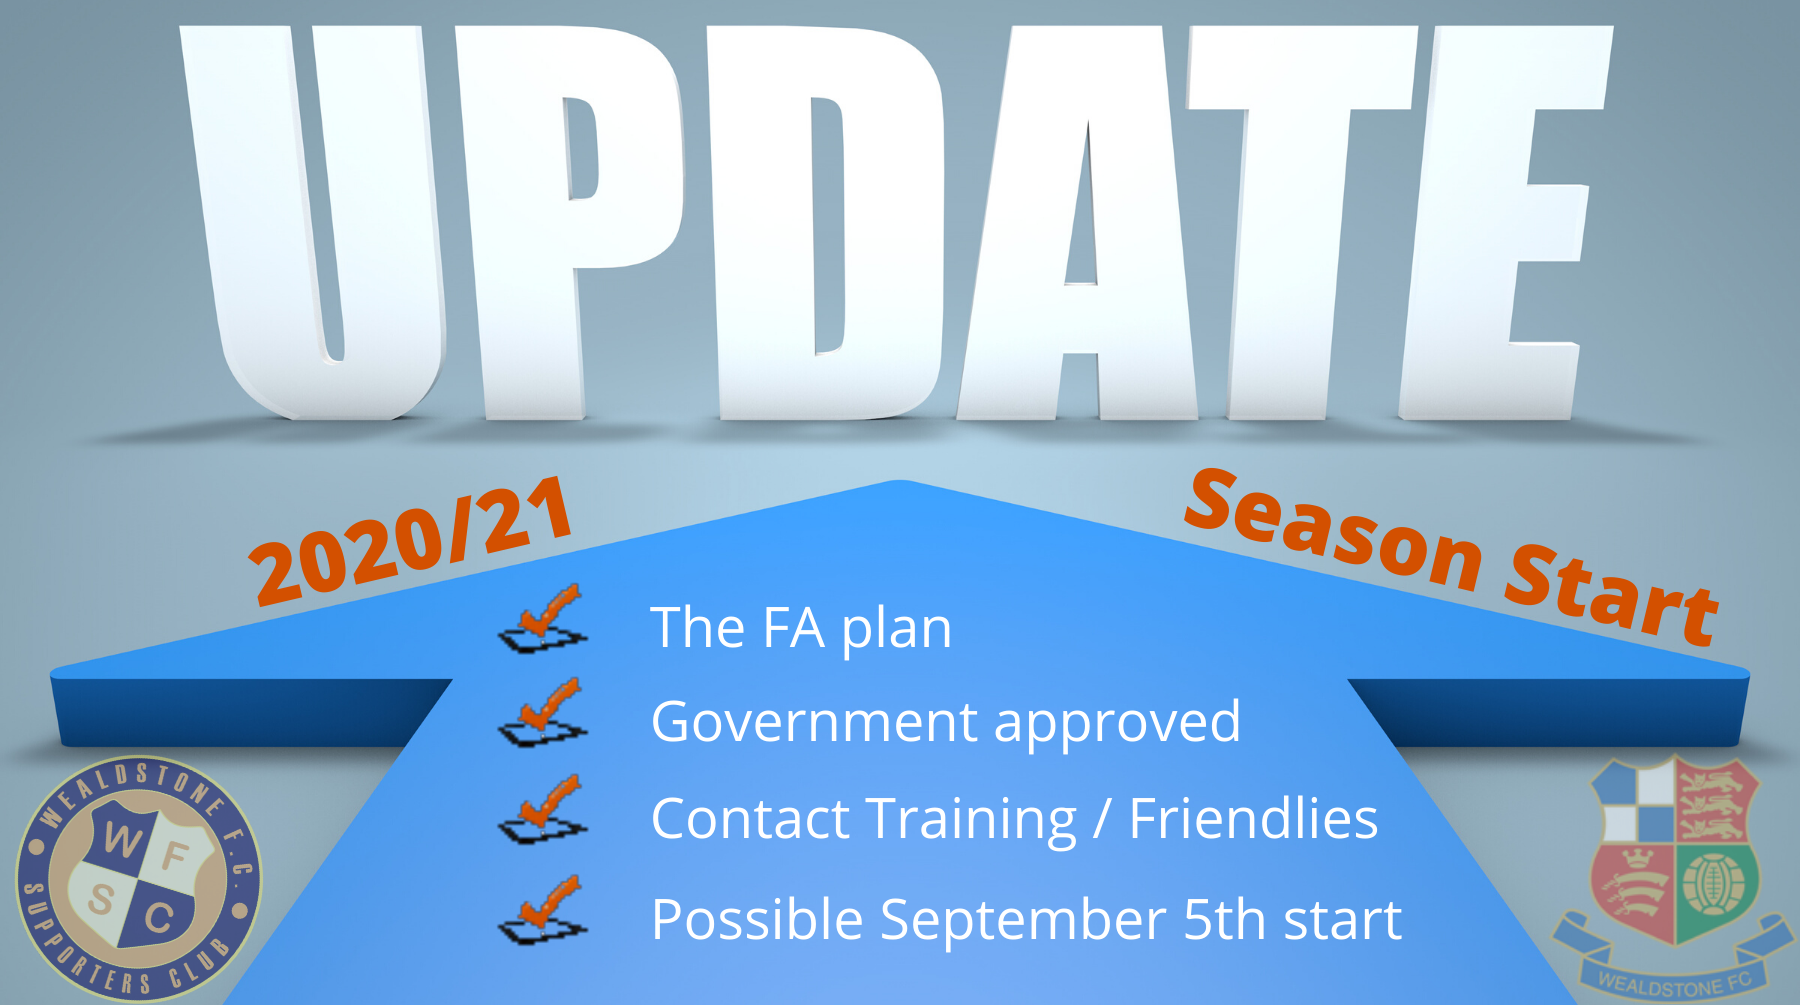 Wealdstone FC Season Start Update